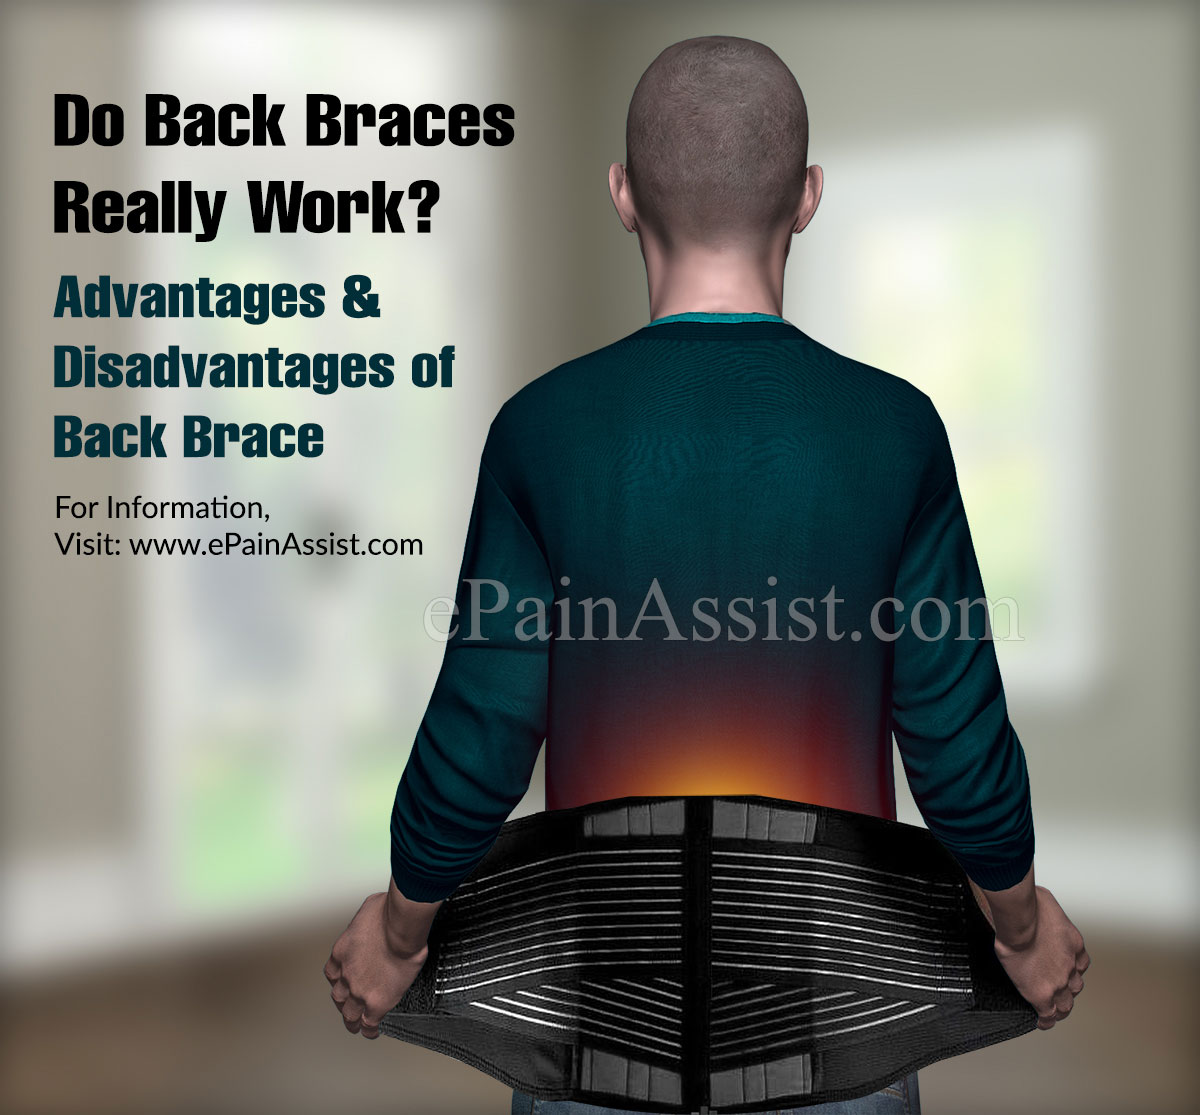 Do Back Braces Really Work?